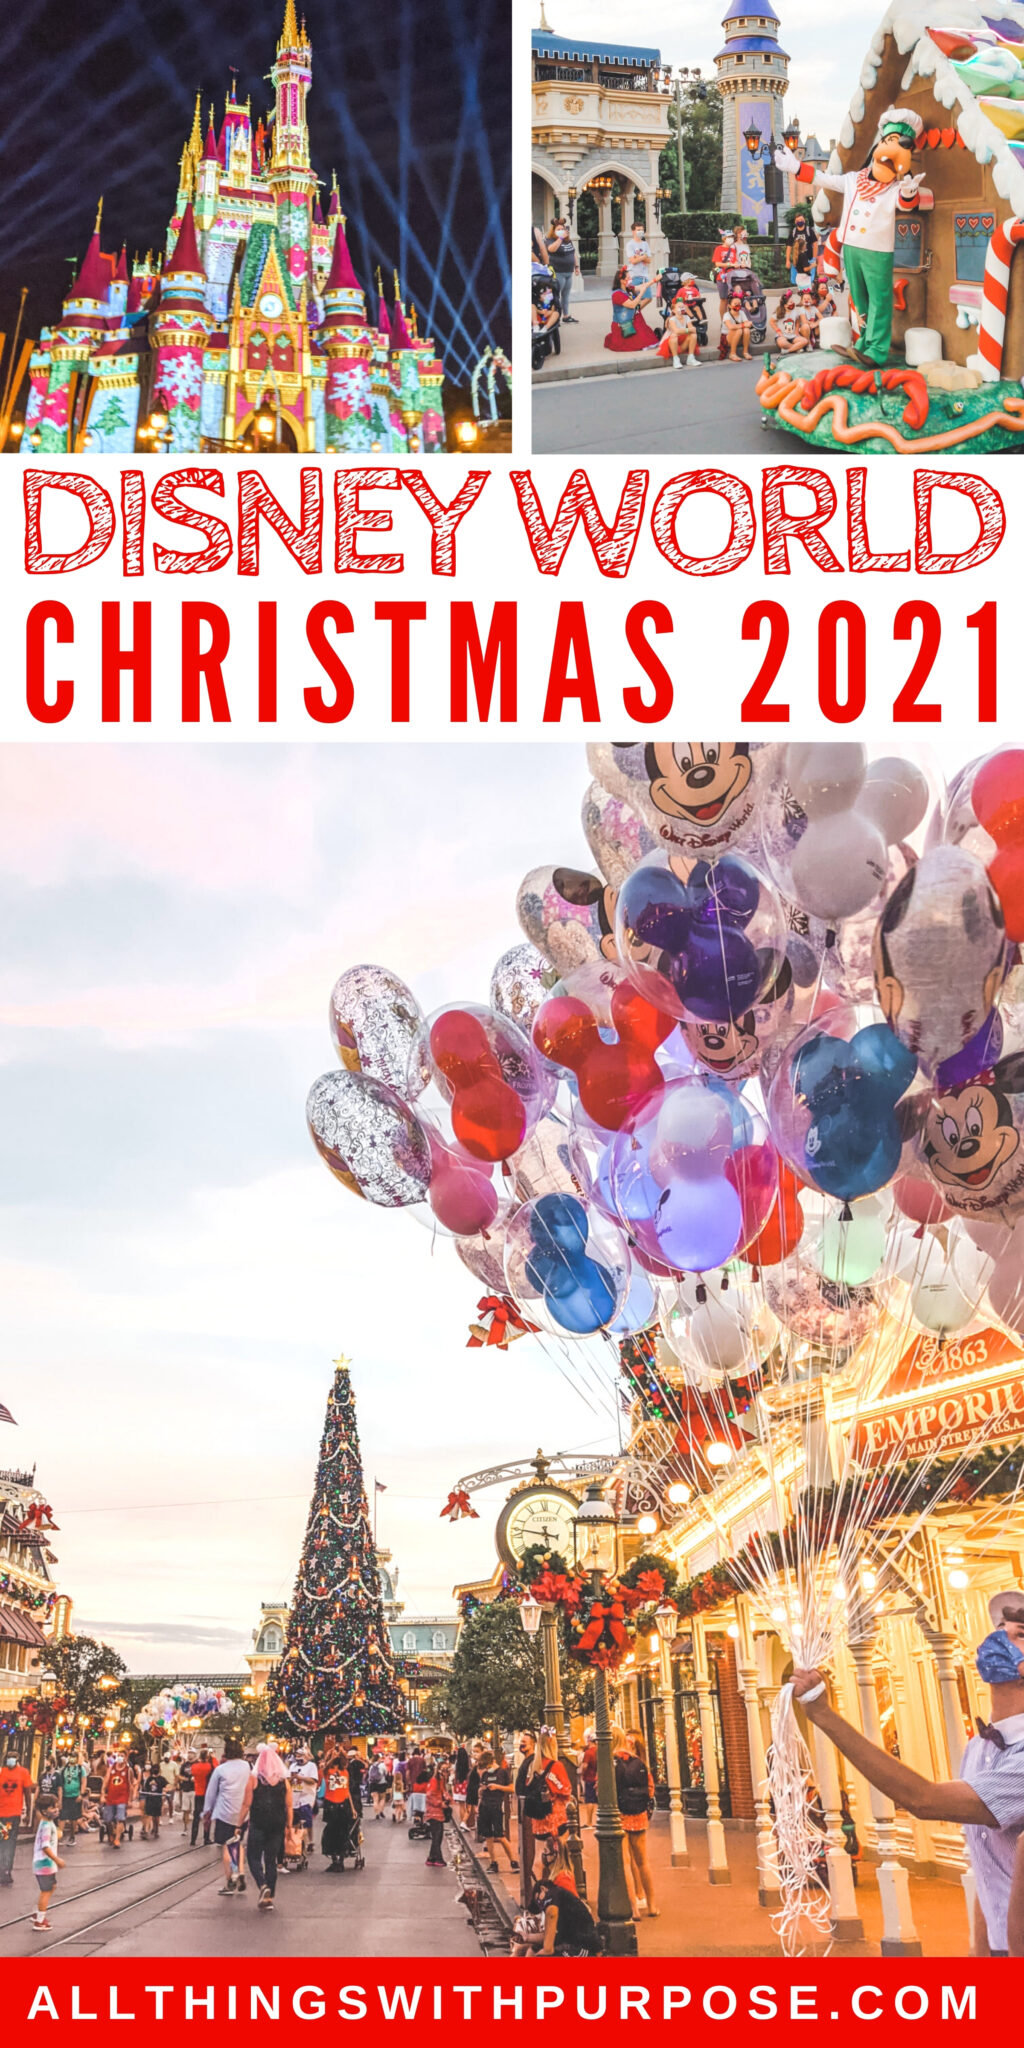 Disney World Holiday Celebration Details for 2021 All Things with Purpose Sarah Lemp